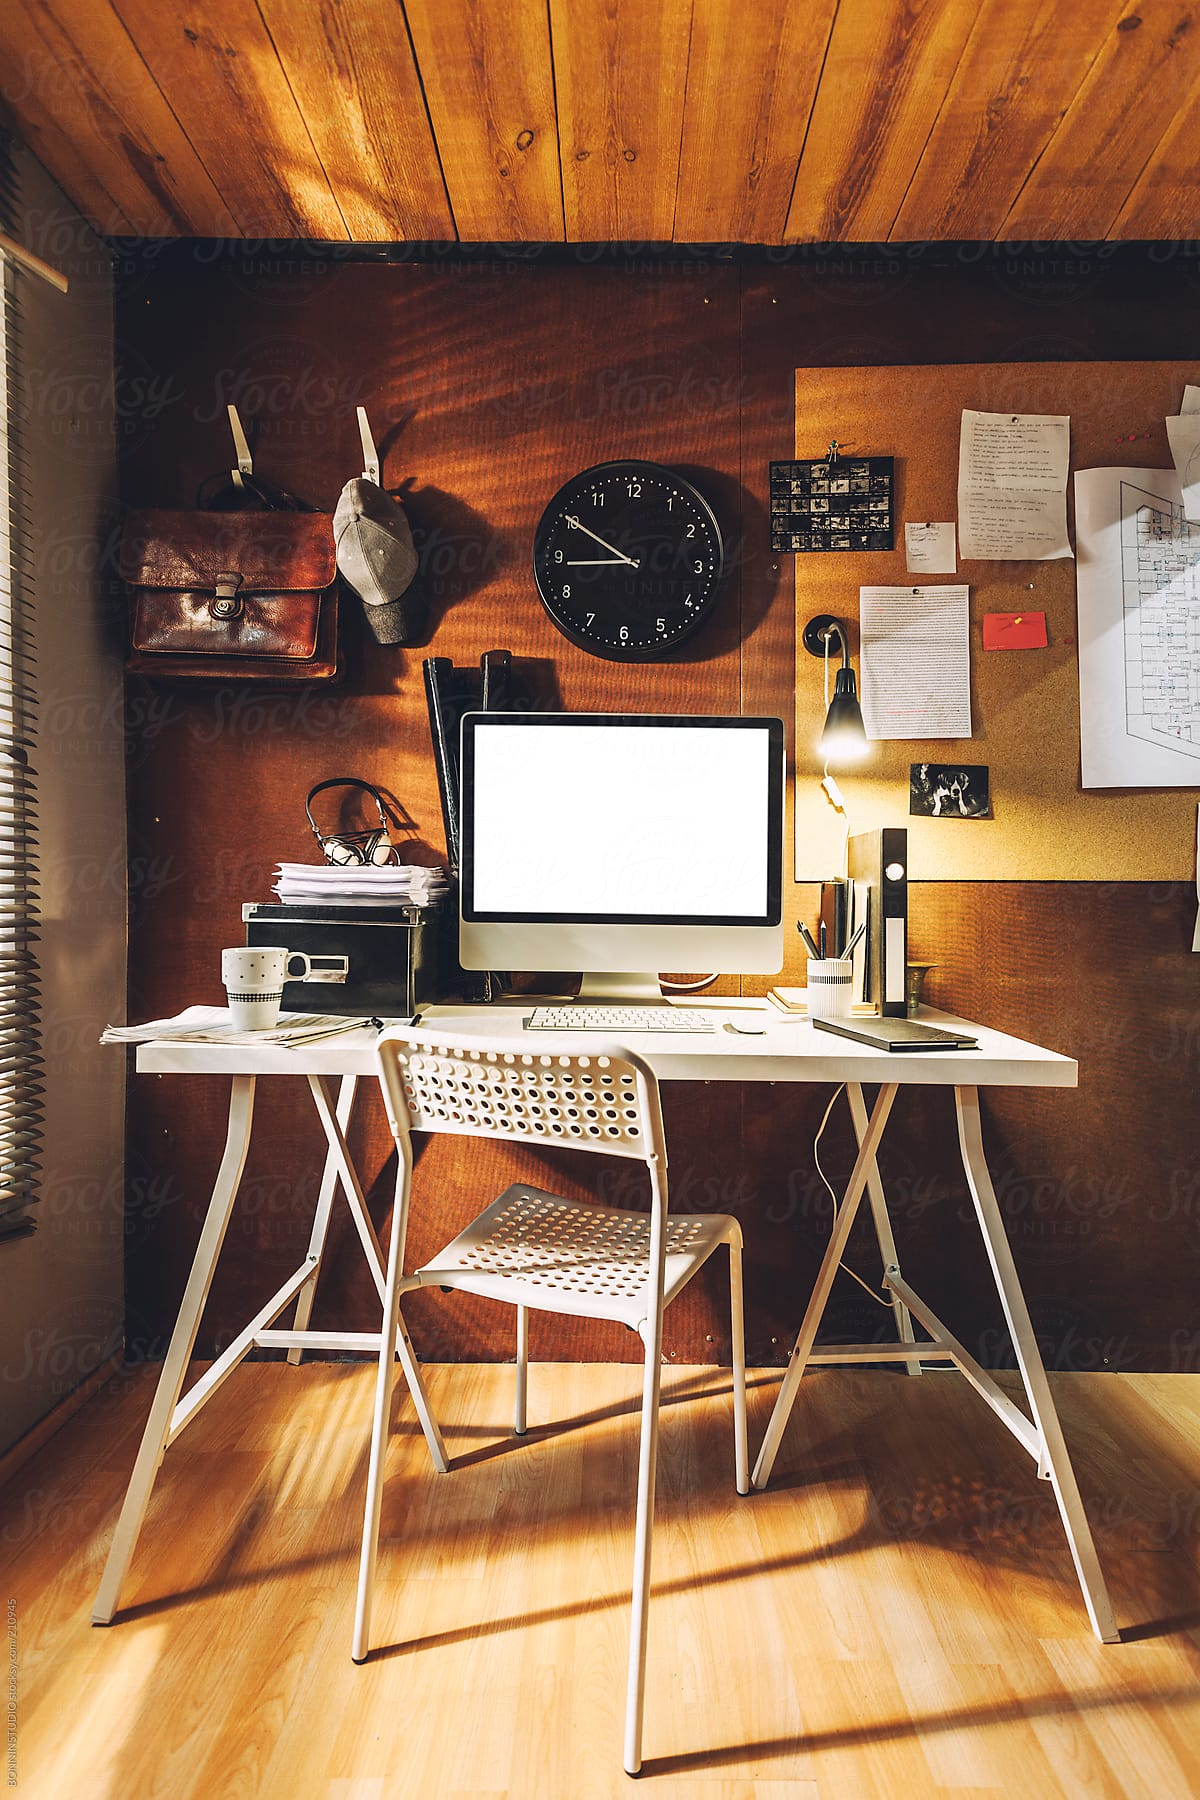 Cute Workspace With Computer On A Wooden Room The Brown Office By Bonninstudio Stocksy United